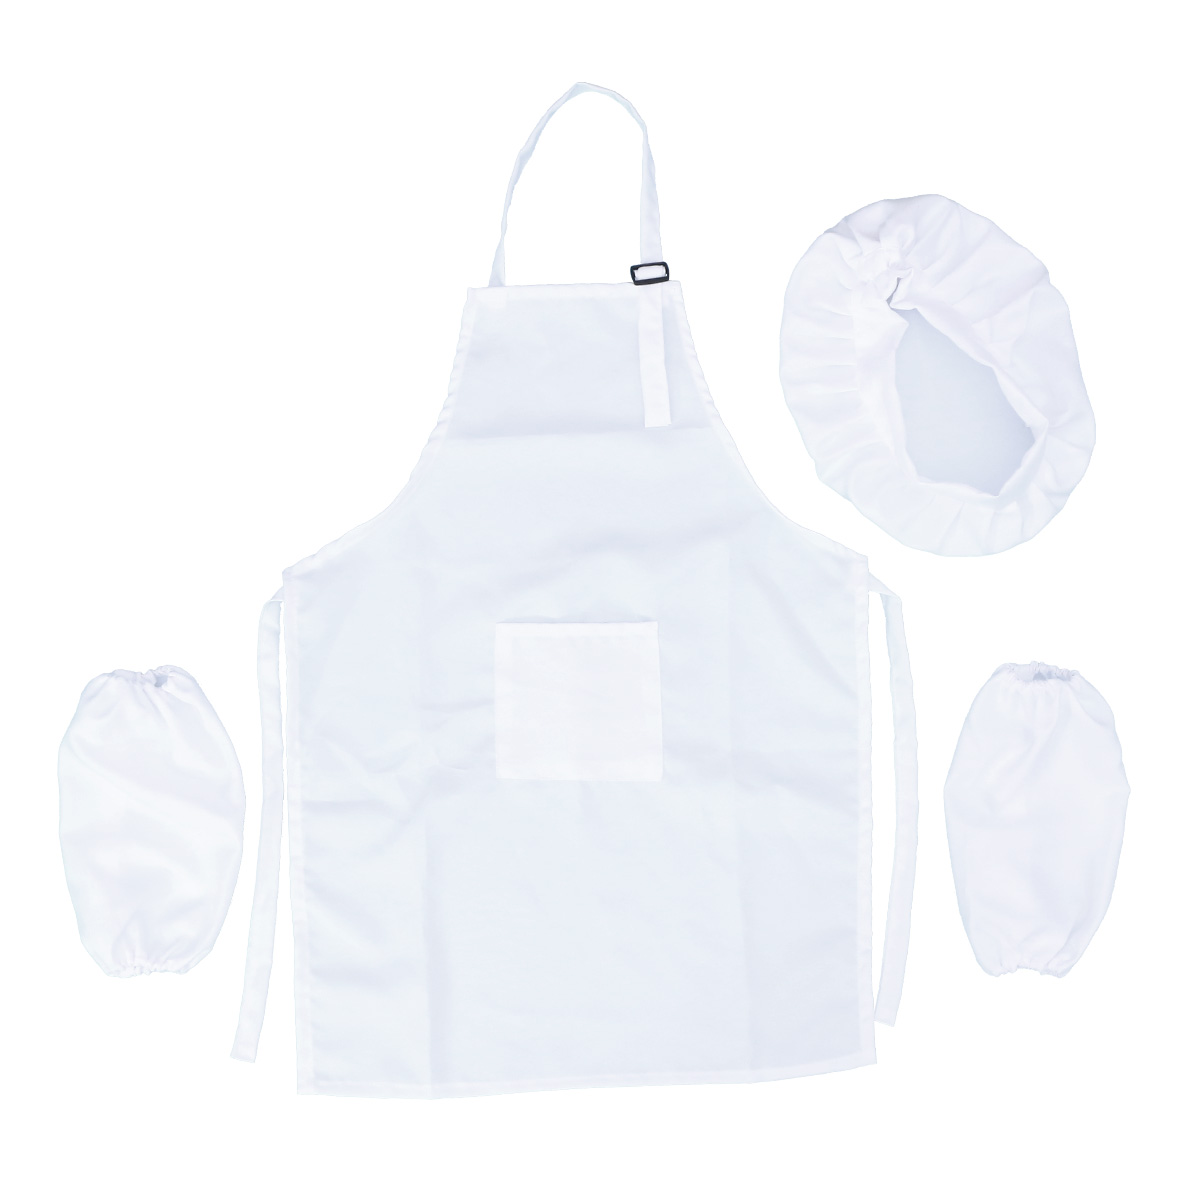 US $7.25 34% OFF|3Pcs Chef Set Complete Kids Kitchen Gift Playset with  Chefs Hat Apron Cooking Sleeve for Kids Cooking Play (White, L)-in Aprons  from ...